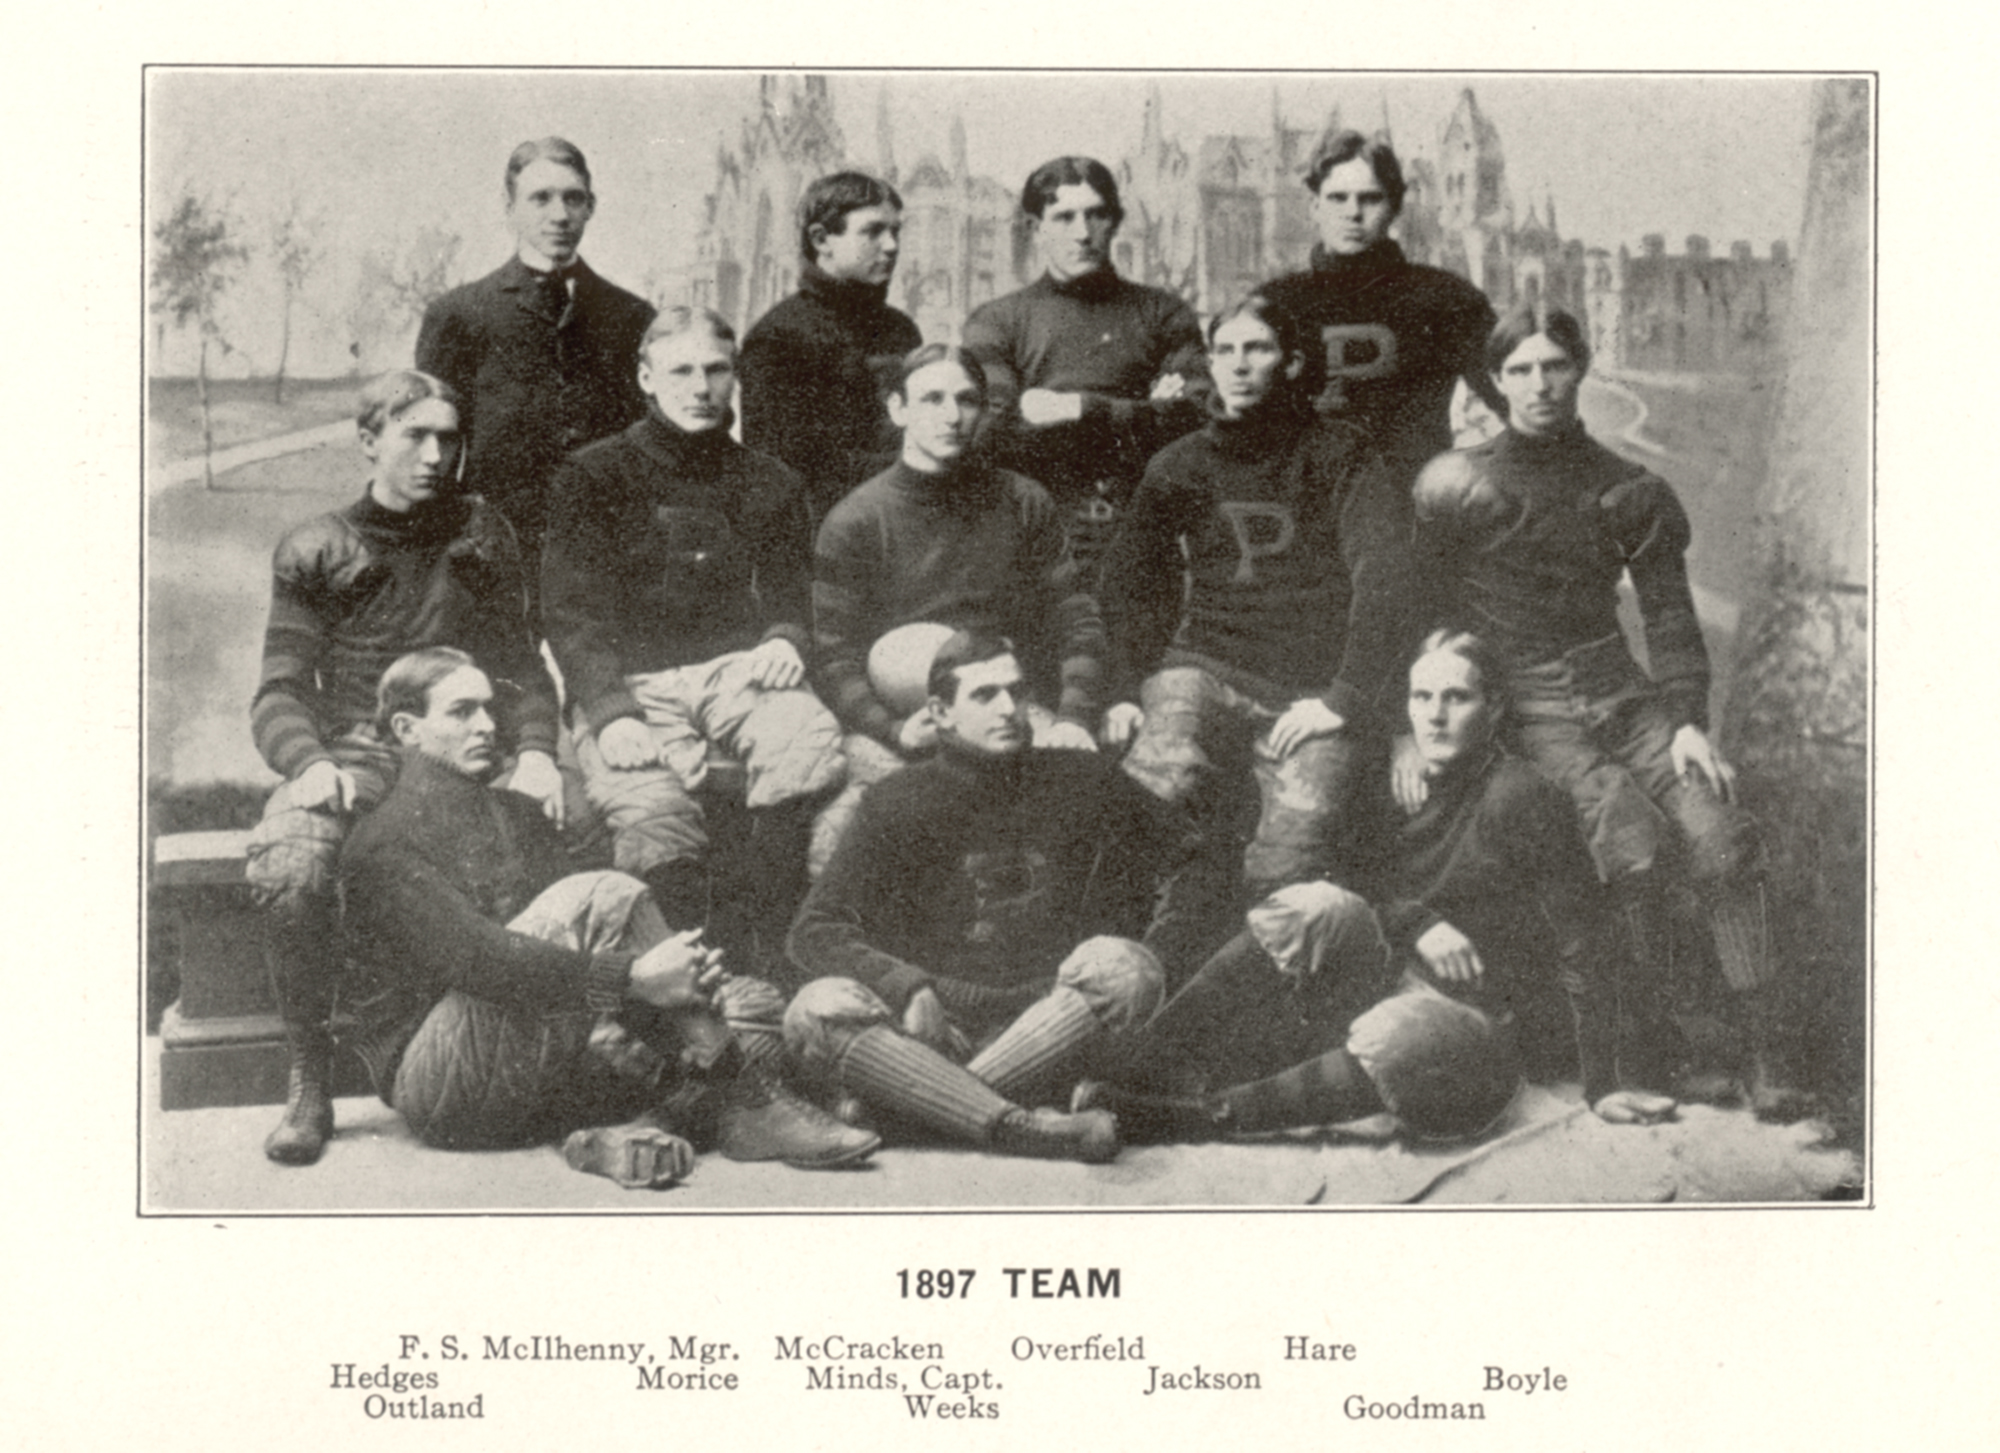 Members of Penn's 1897 national champion football team